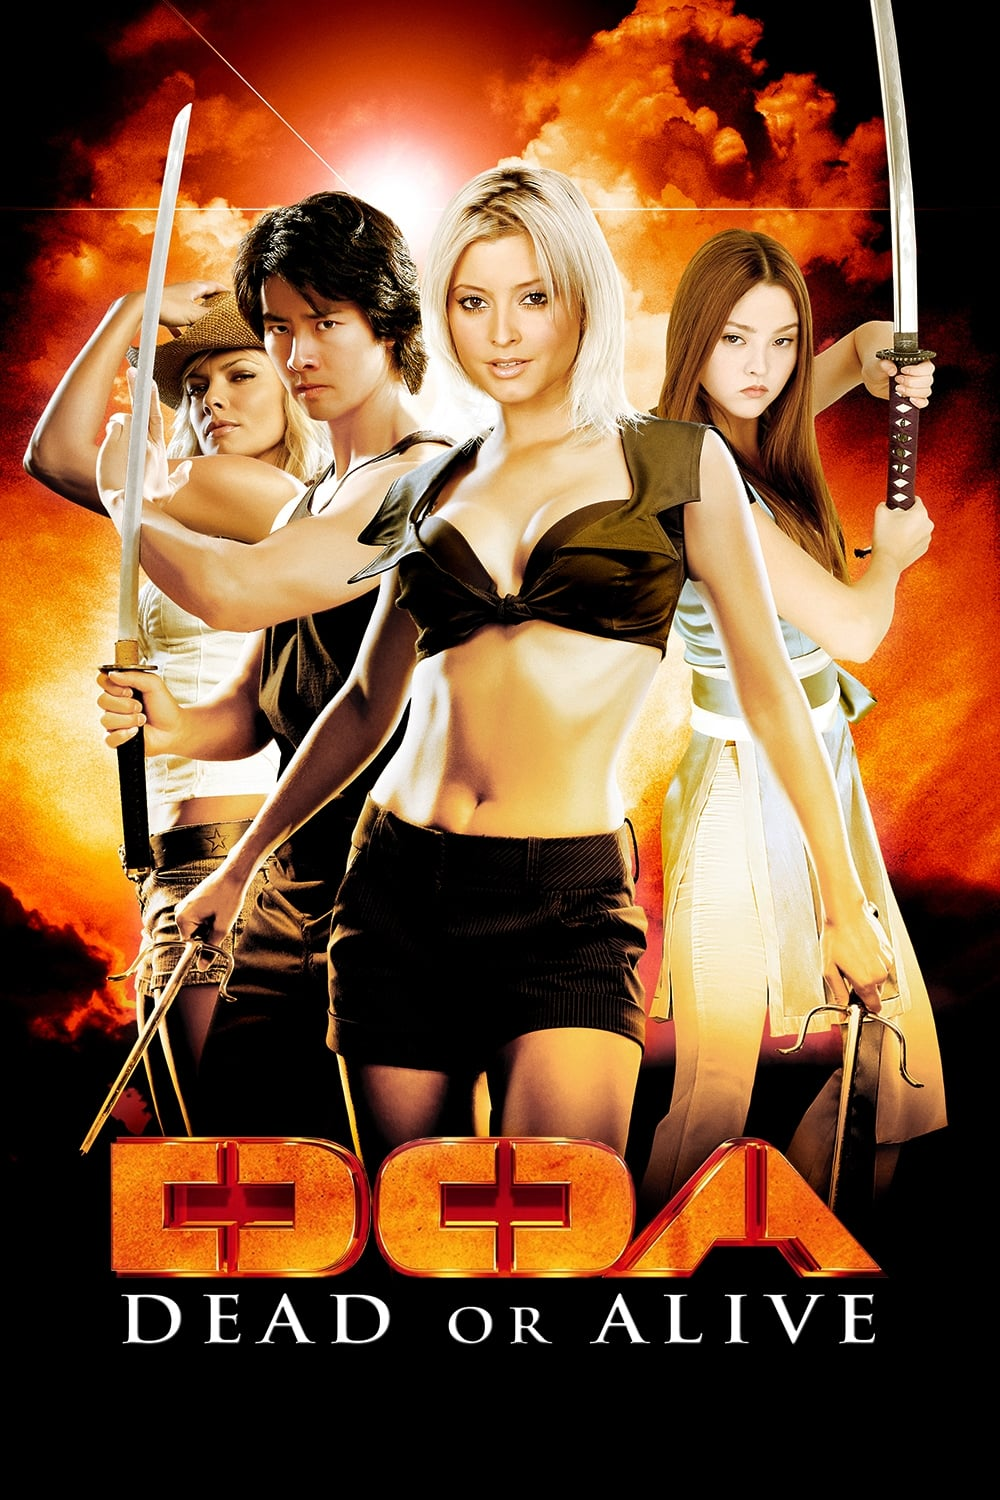 DOA: Dead or Alive 2006 BluRay 1080p [4.1 GB] 720p [894 MB] 480p [411 MB] [Hindi DD 2.0 + English DTS 5.1] | G-Drive